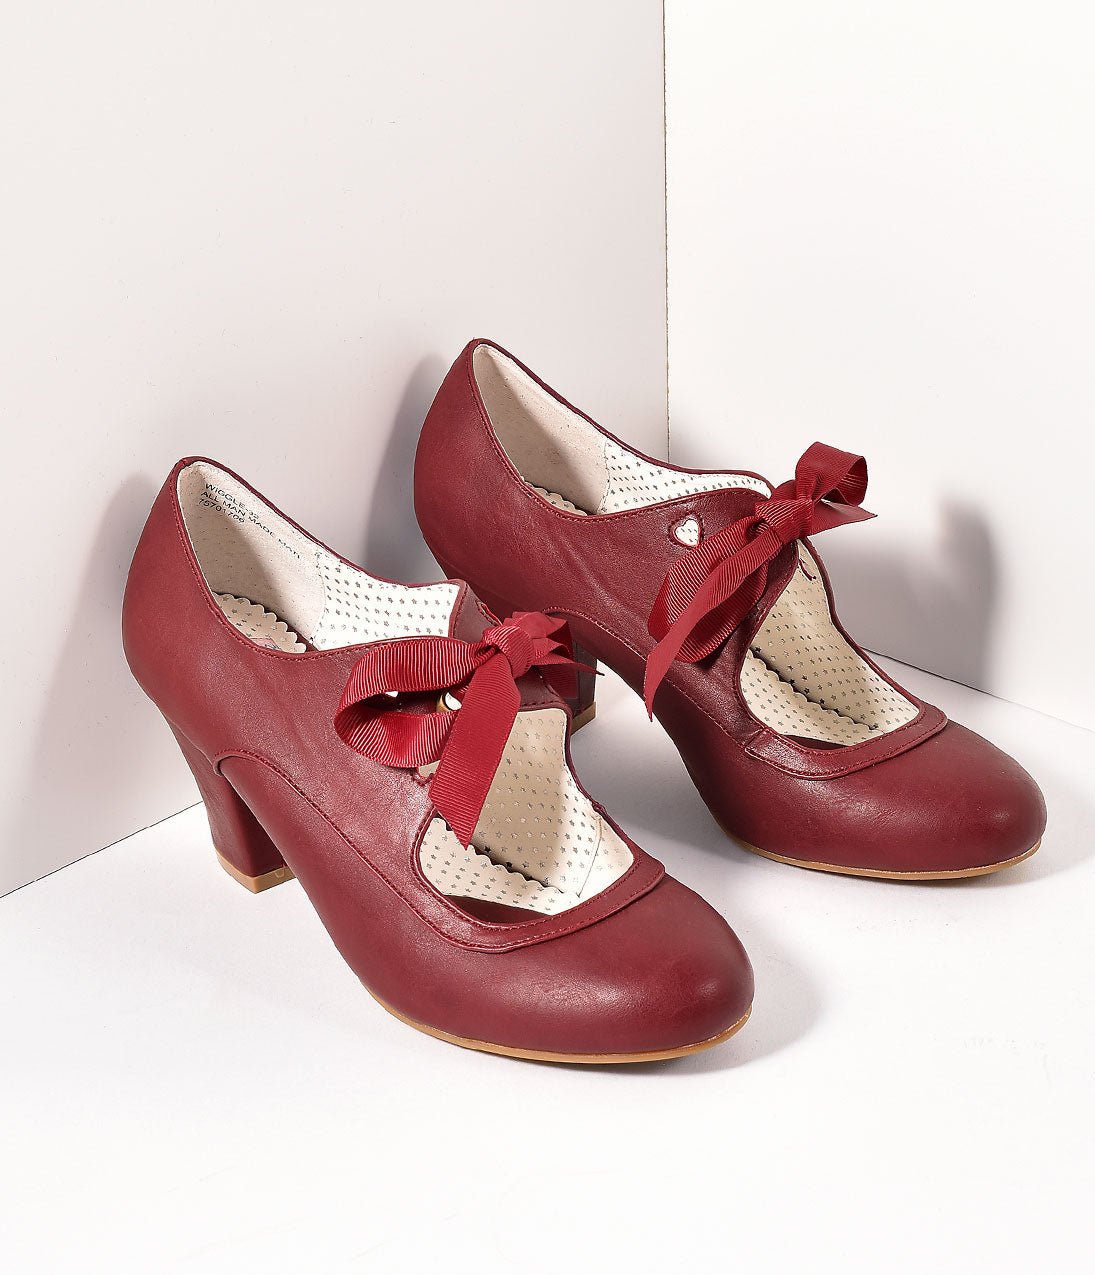 Vintage Style Shoes, Vintage Inspired Shoes Vintage Style Burgundy Leatherette Mary Jane Bow Wiggle Heels $58.00 AT vintagedancer.com